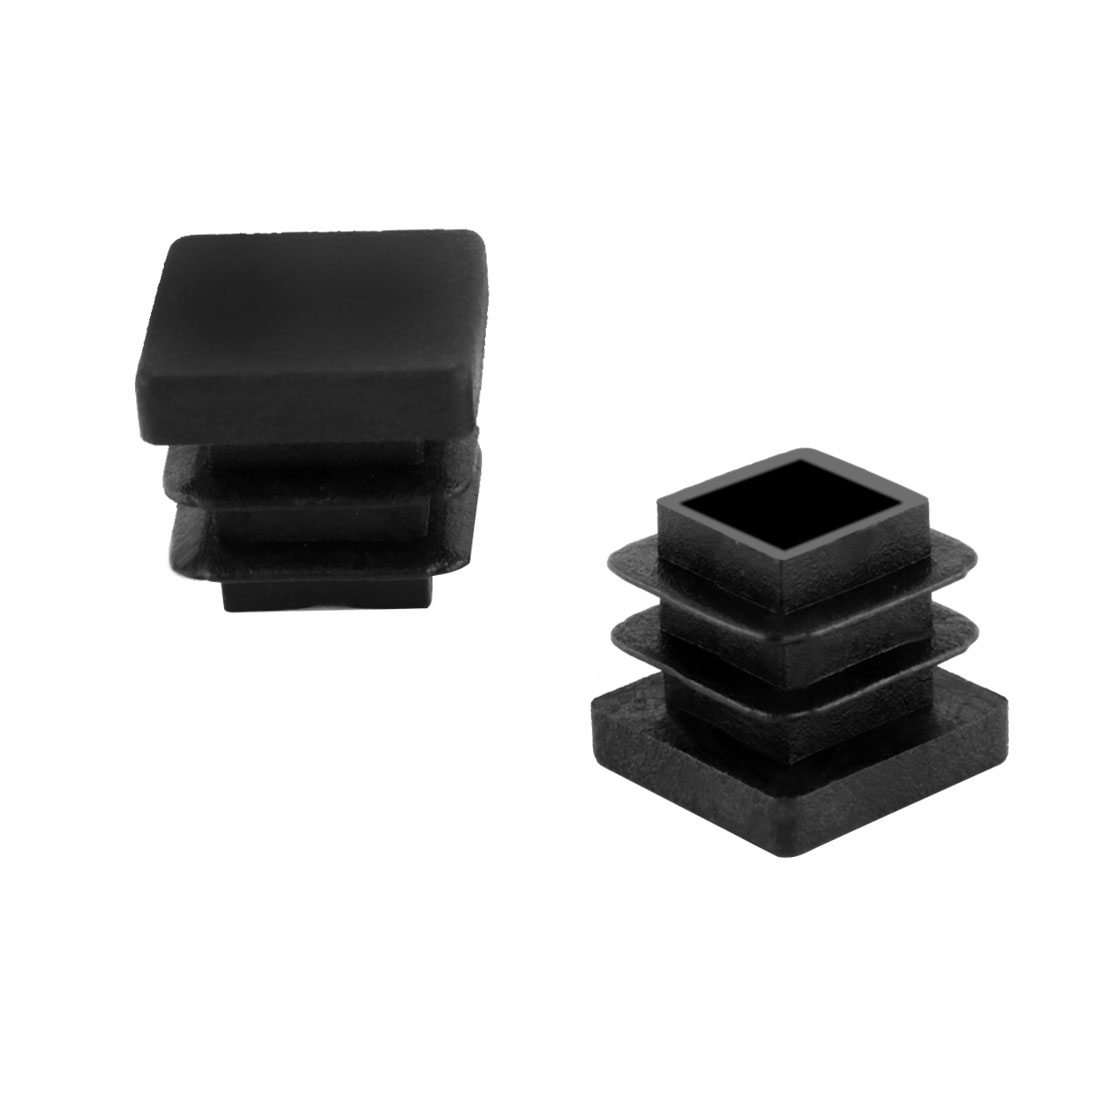 2 Pieces Black Plastic Square Blanking End Caps Tubing Tube Cover Inserts 15mm x 15mm